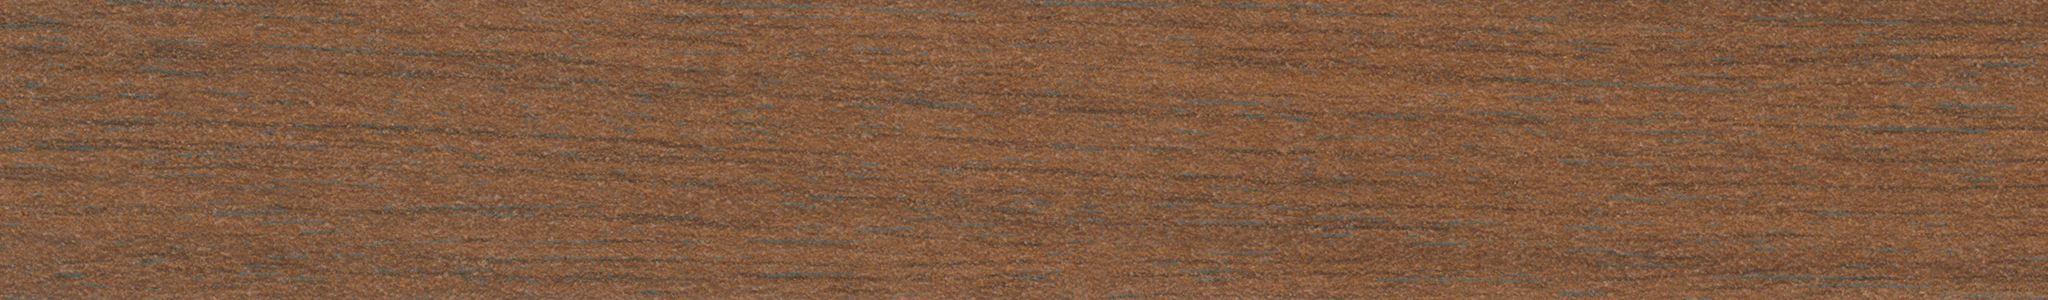 HD 48384 Melamine Edge Mahogany Pore